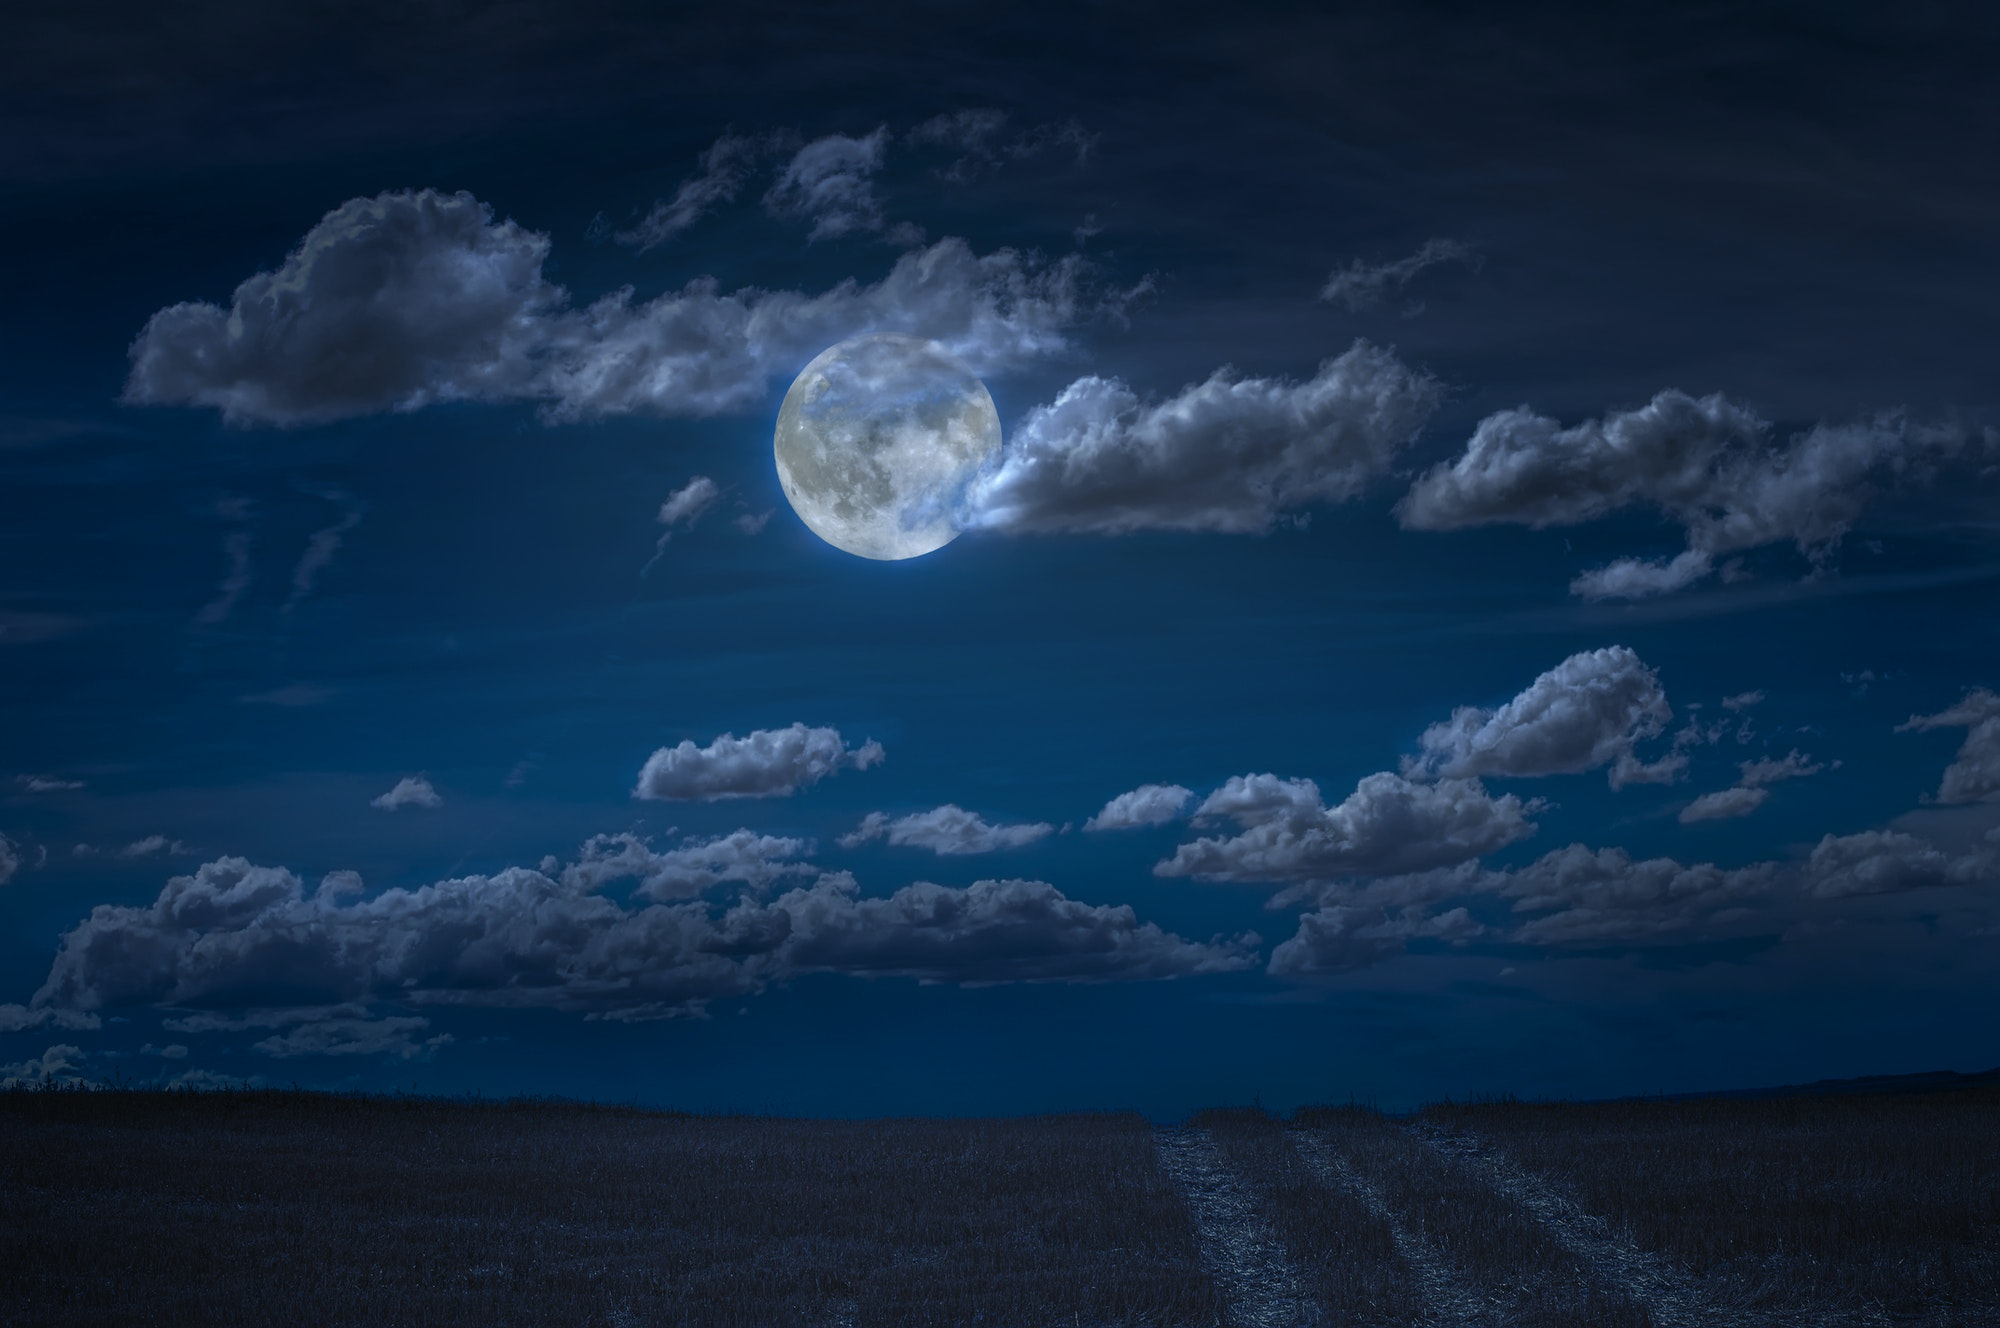 Moon and clouds in the night. Moonlight and road background.